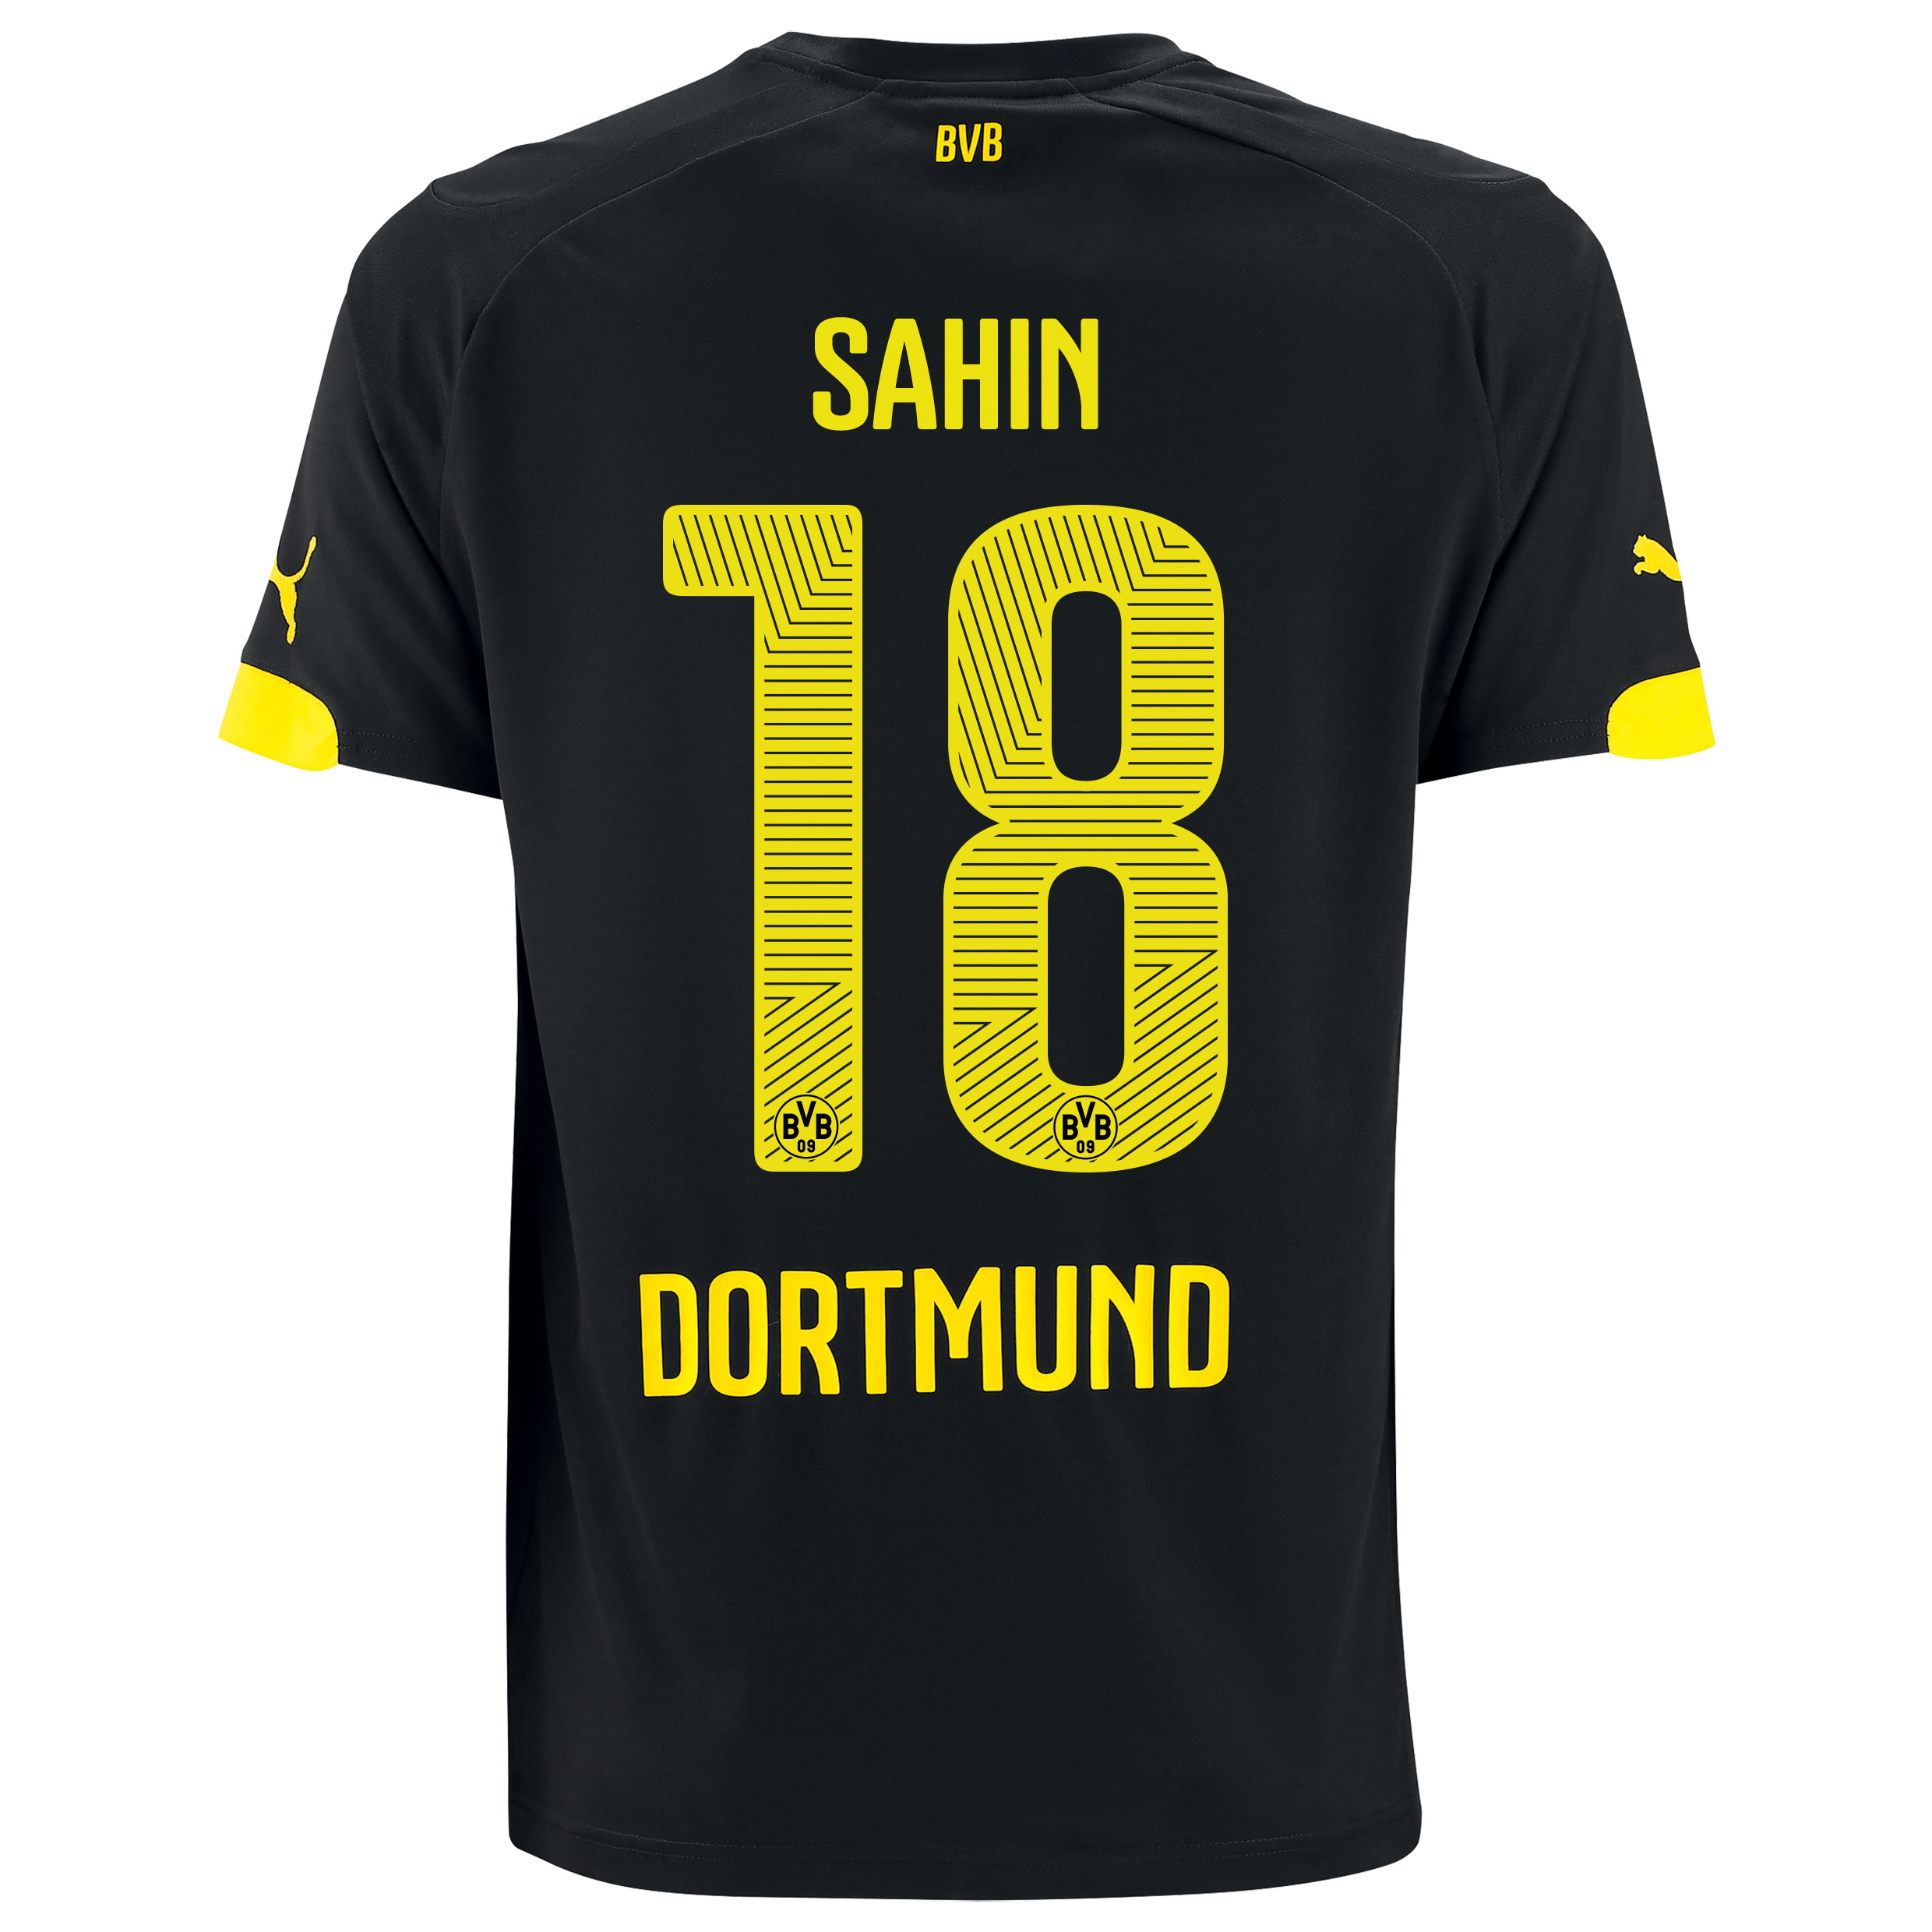 BVB Away Shirt 2014/15 Black with Sahin 18 printing